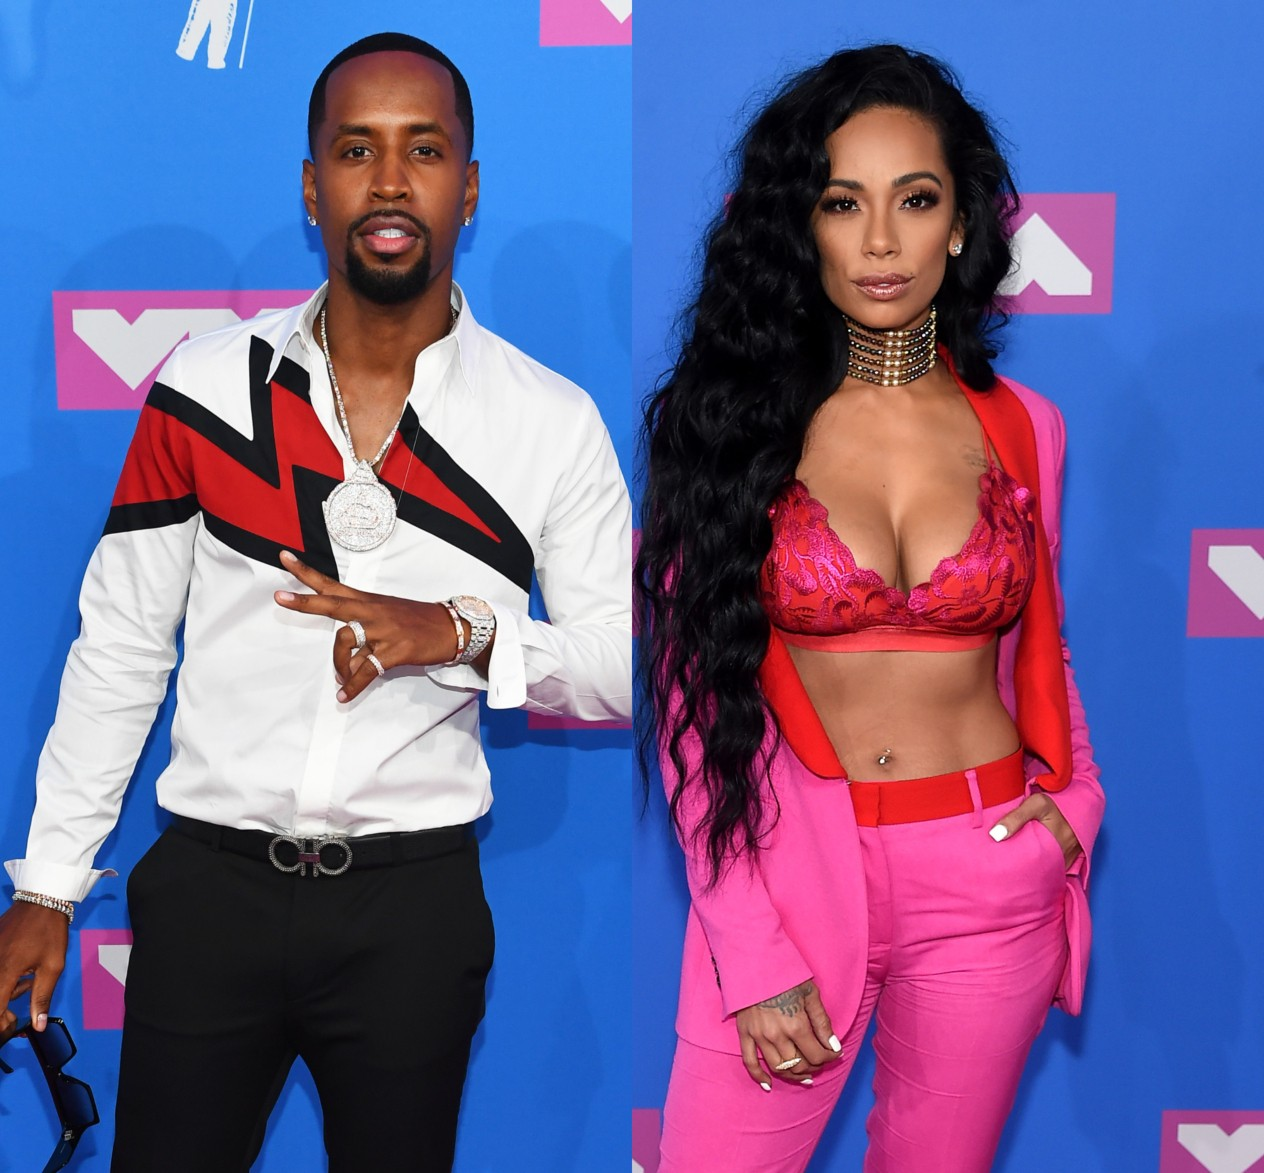 Safaree Samuels And Erica Mena Get Engaged - Check Out The Video In Which She Shows Off Her Ring